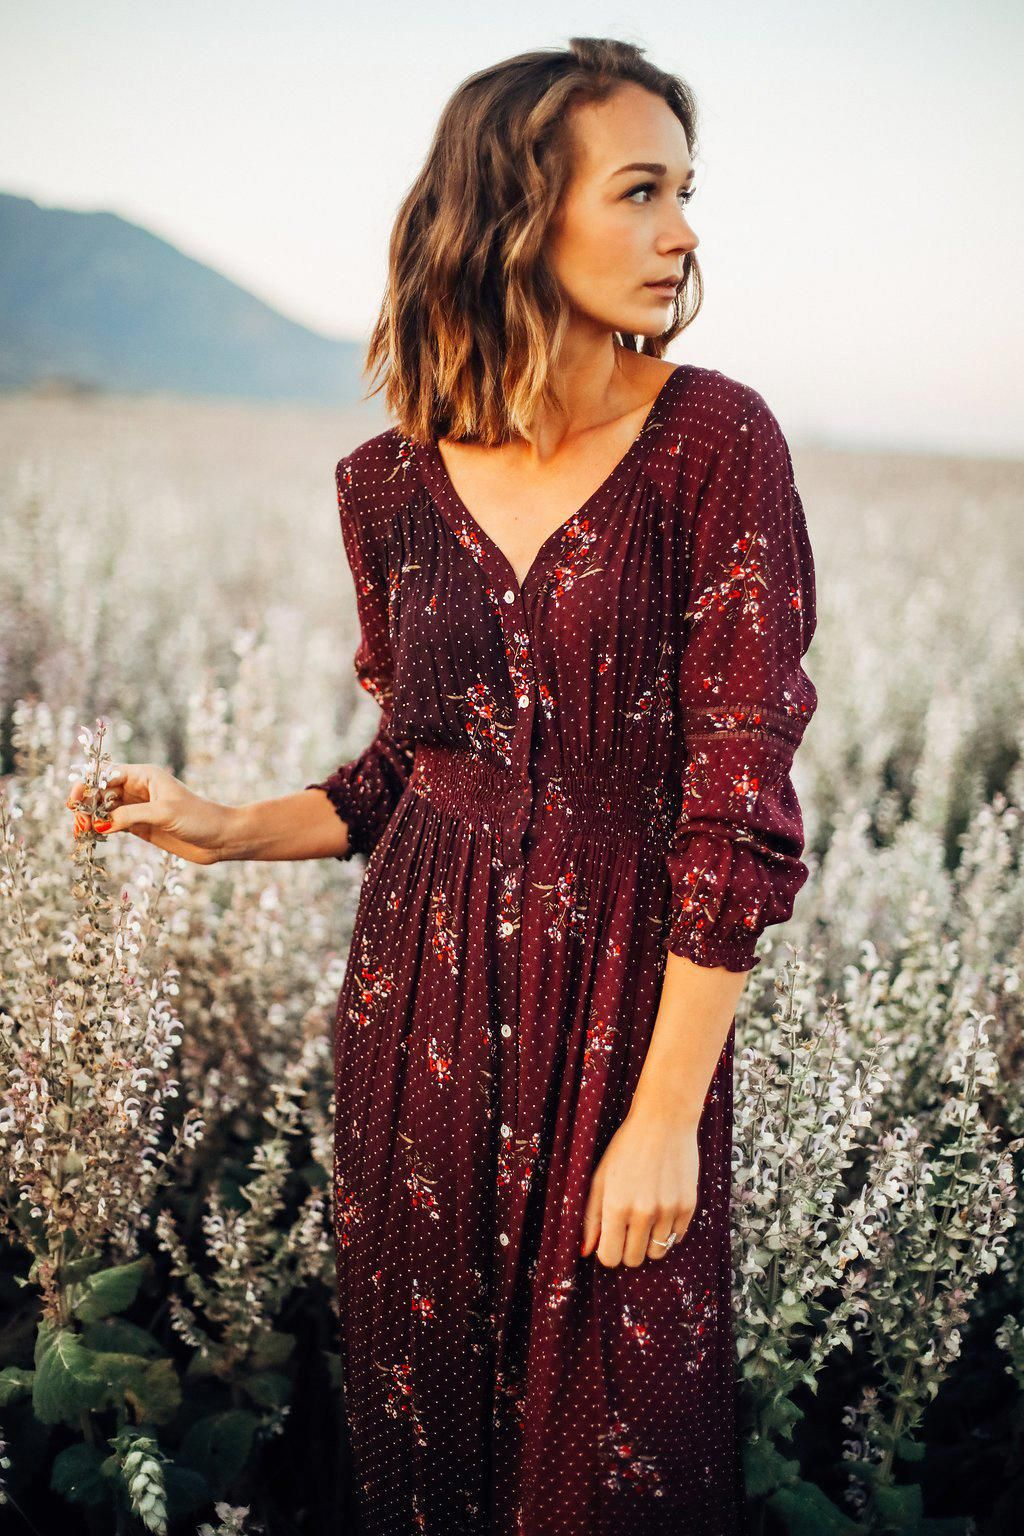 Clothes Country for women forecast dress in winter in 2019